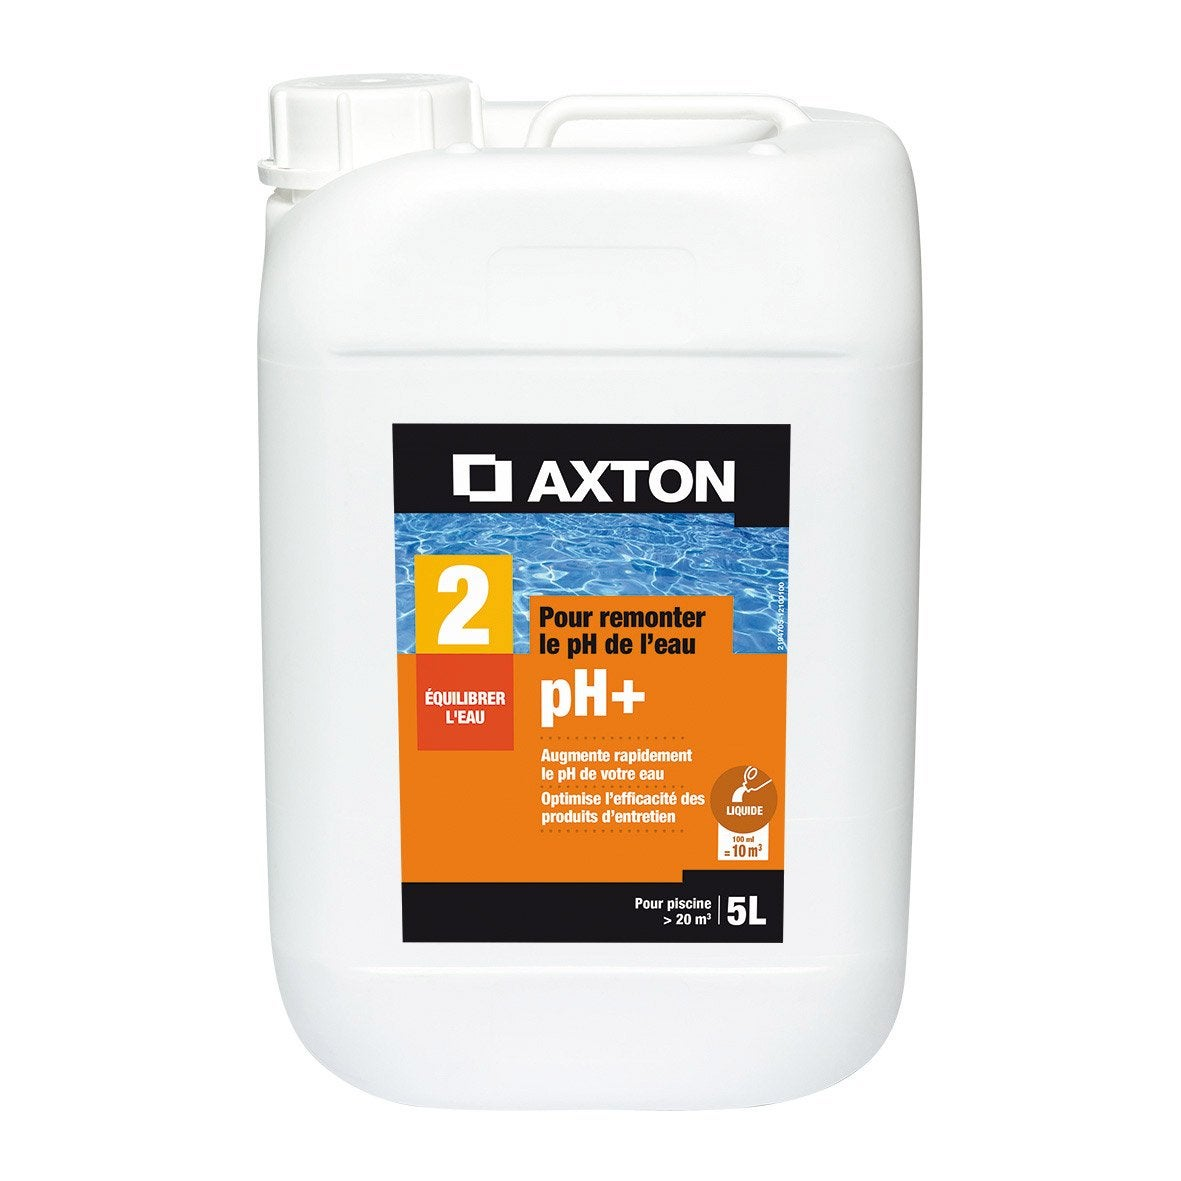 Rehausseur de ph piscine axton liquide 5 l leroy merlin for Produit piscine